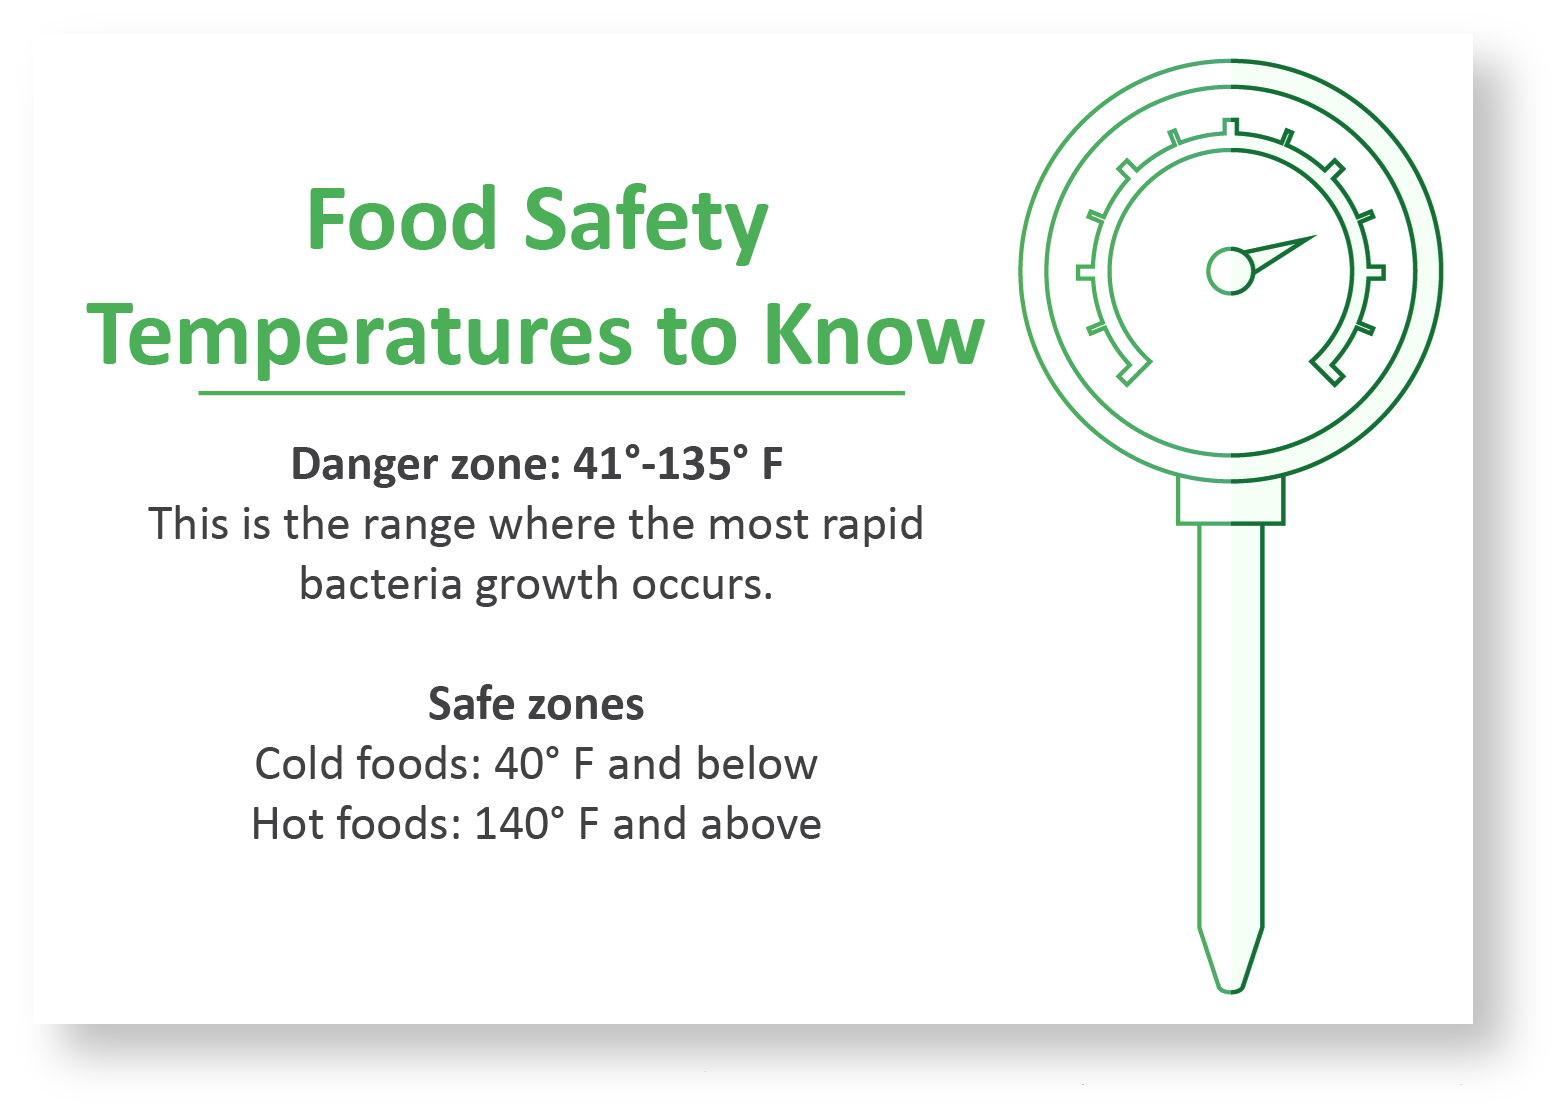 Food Safety Temperatures to Know